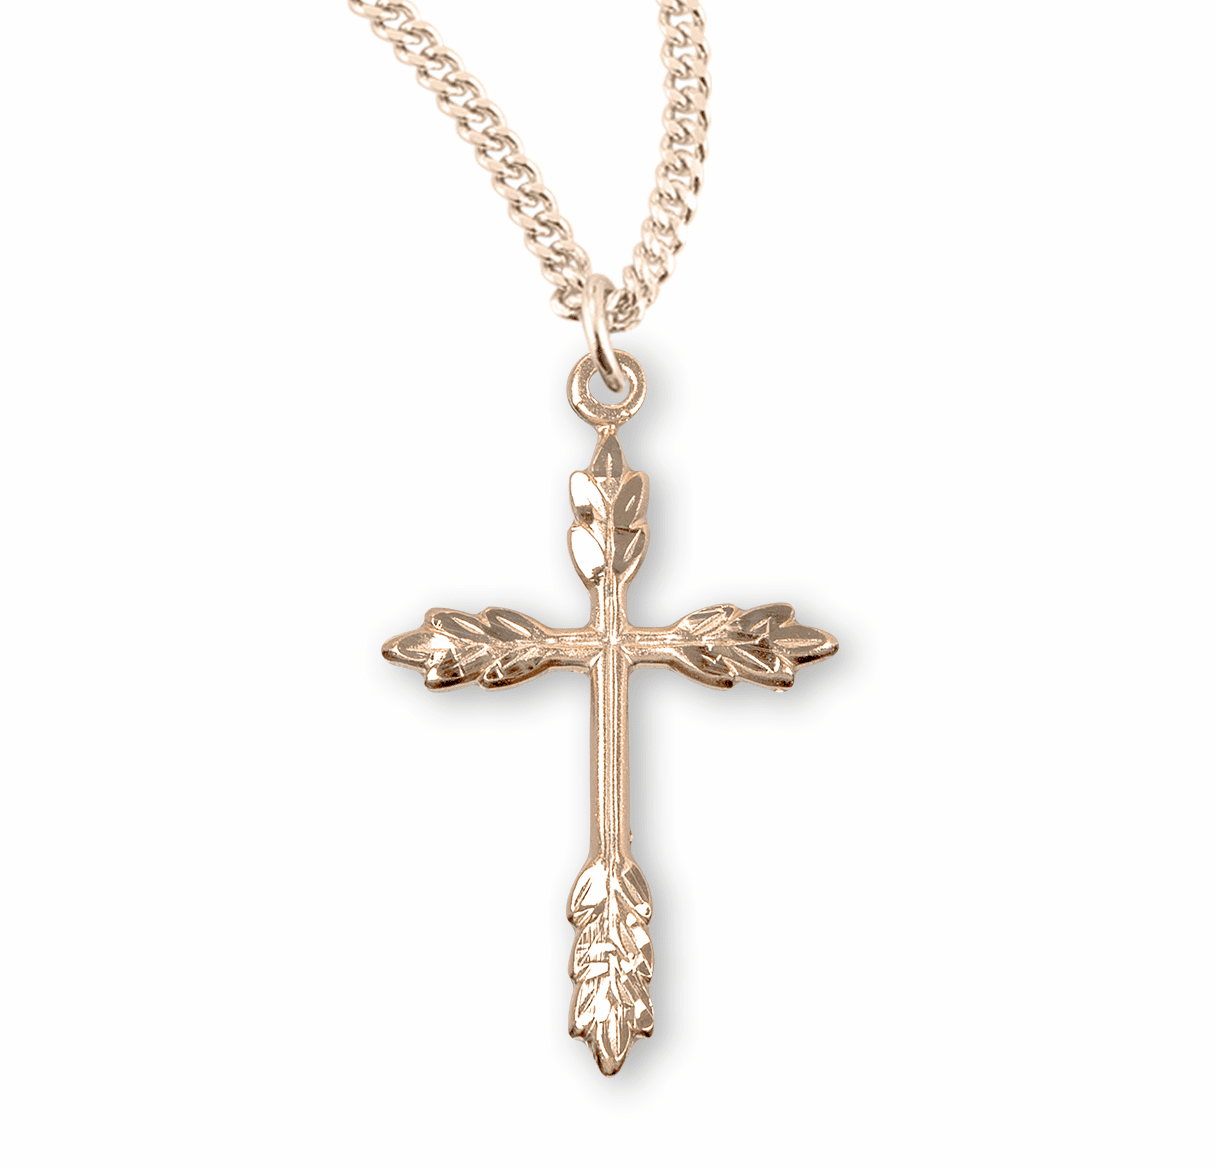 Medium Gold Wheat Cross Necklace by HMH Religious